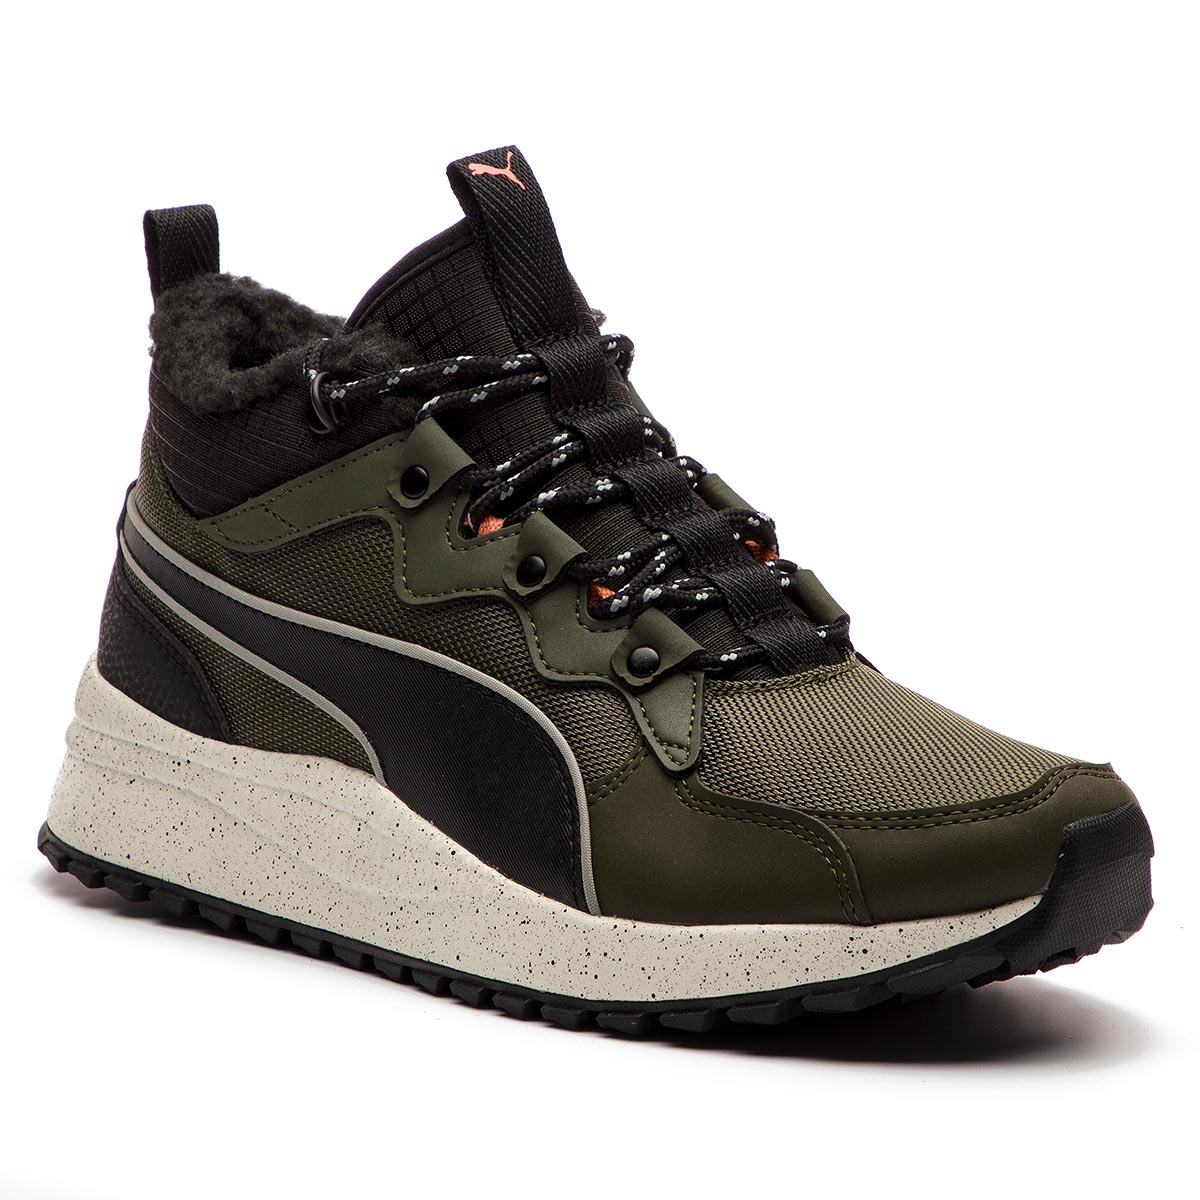 Buty PUMA – Pacer Next Sv Wtr 366936 02 Forest Night/Black/Wh White